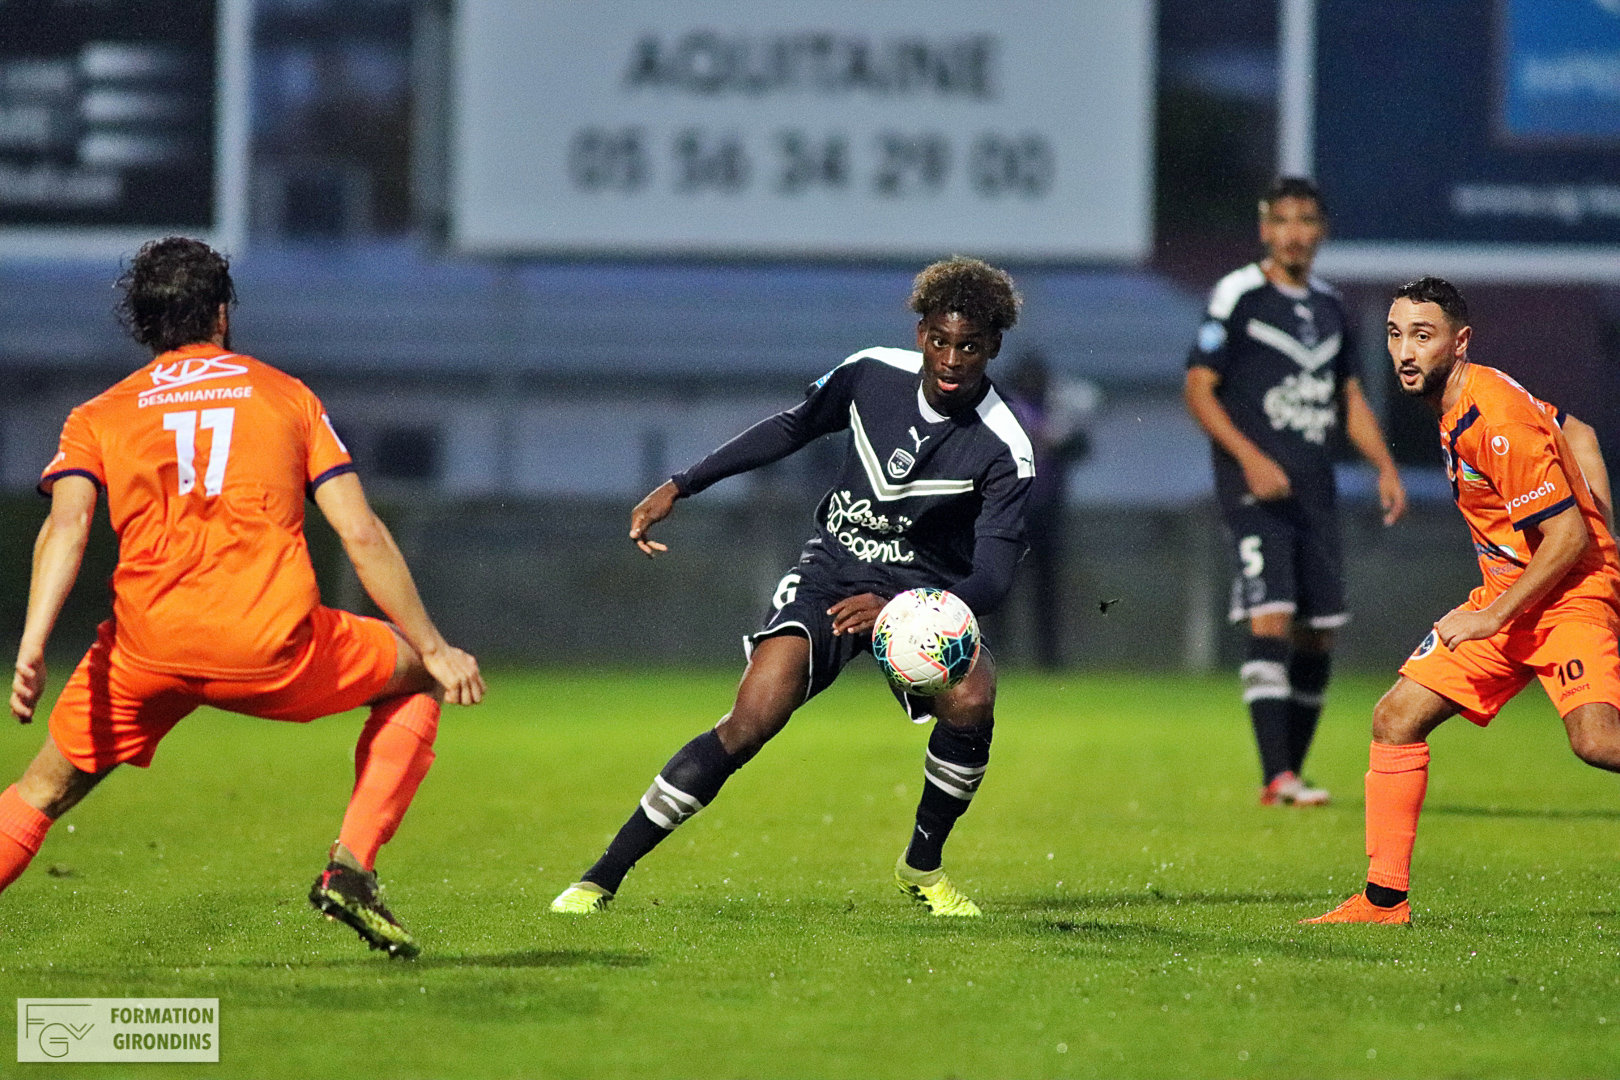 Cfa Girondins : Une victoire en amical - Formation Girondins